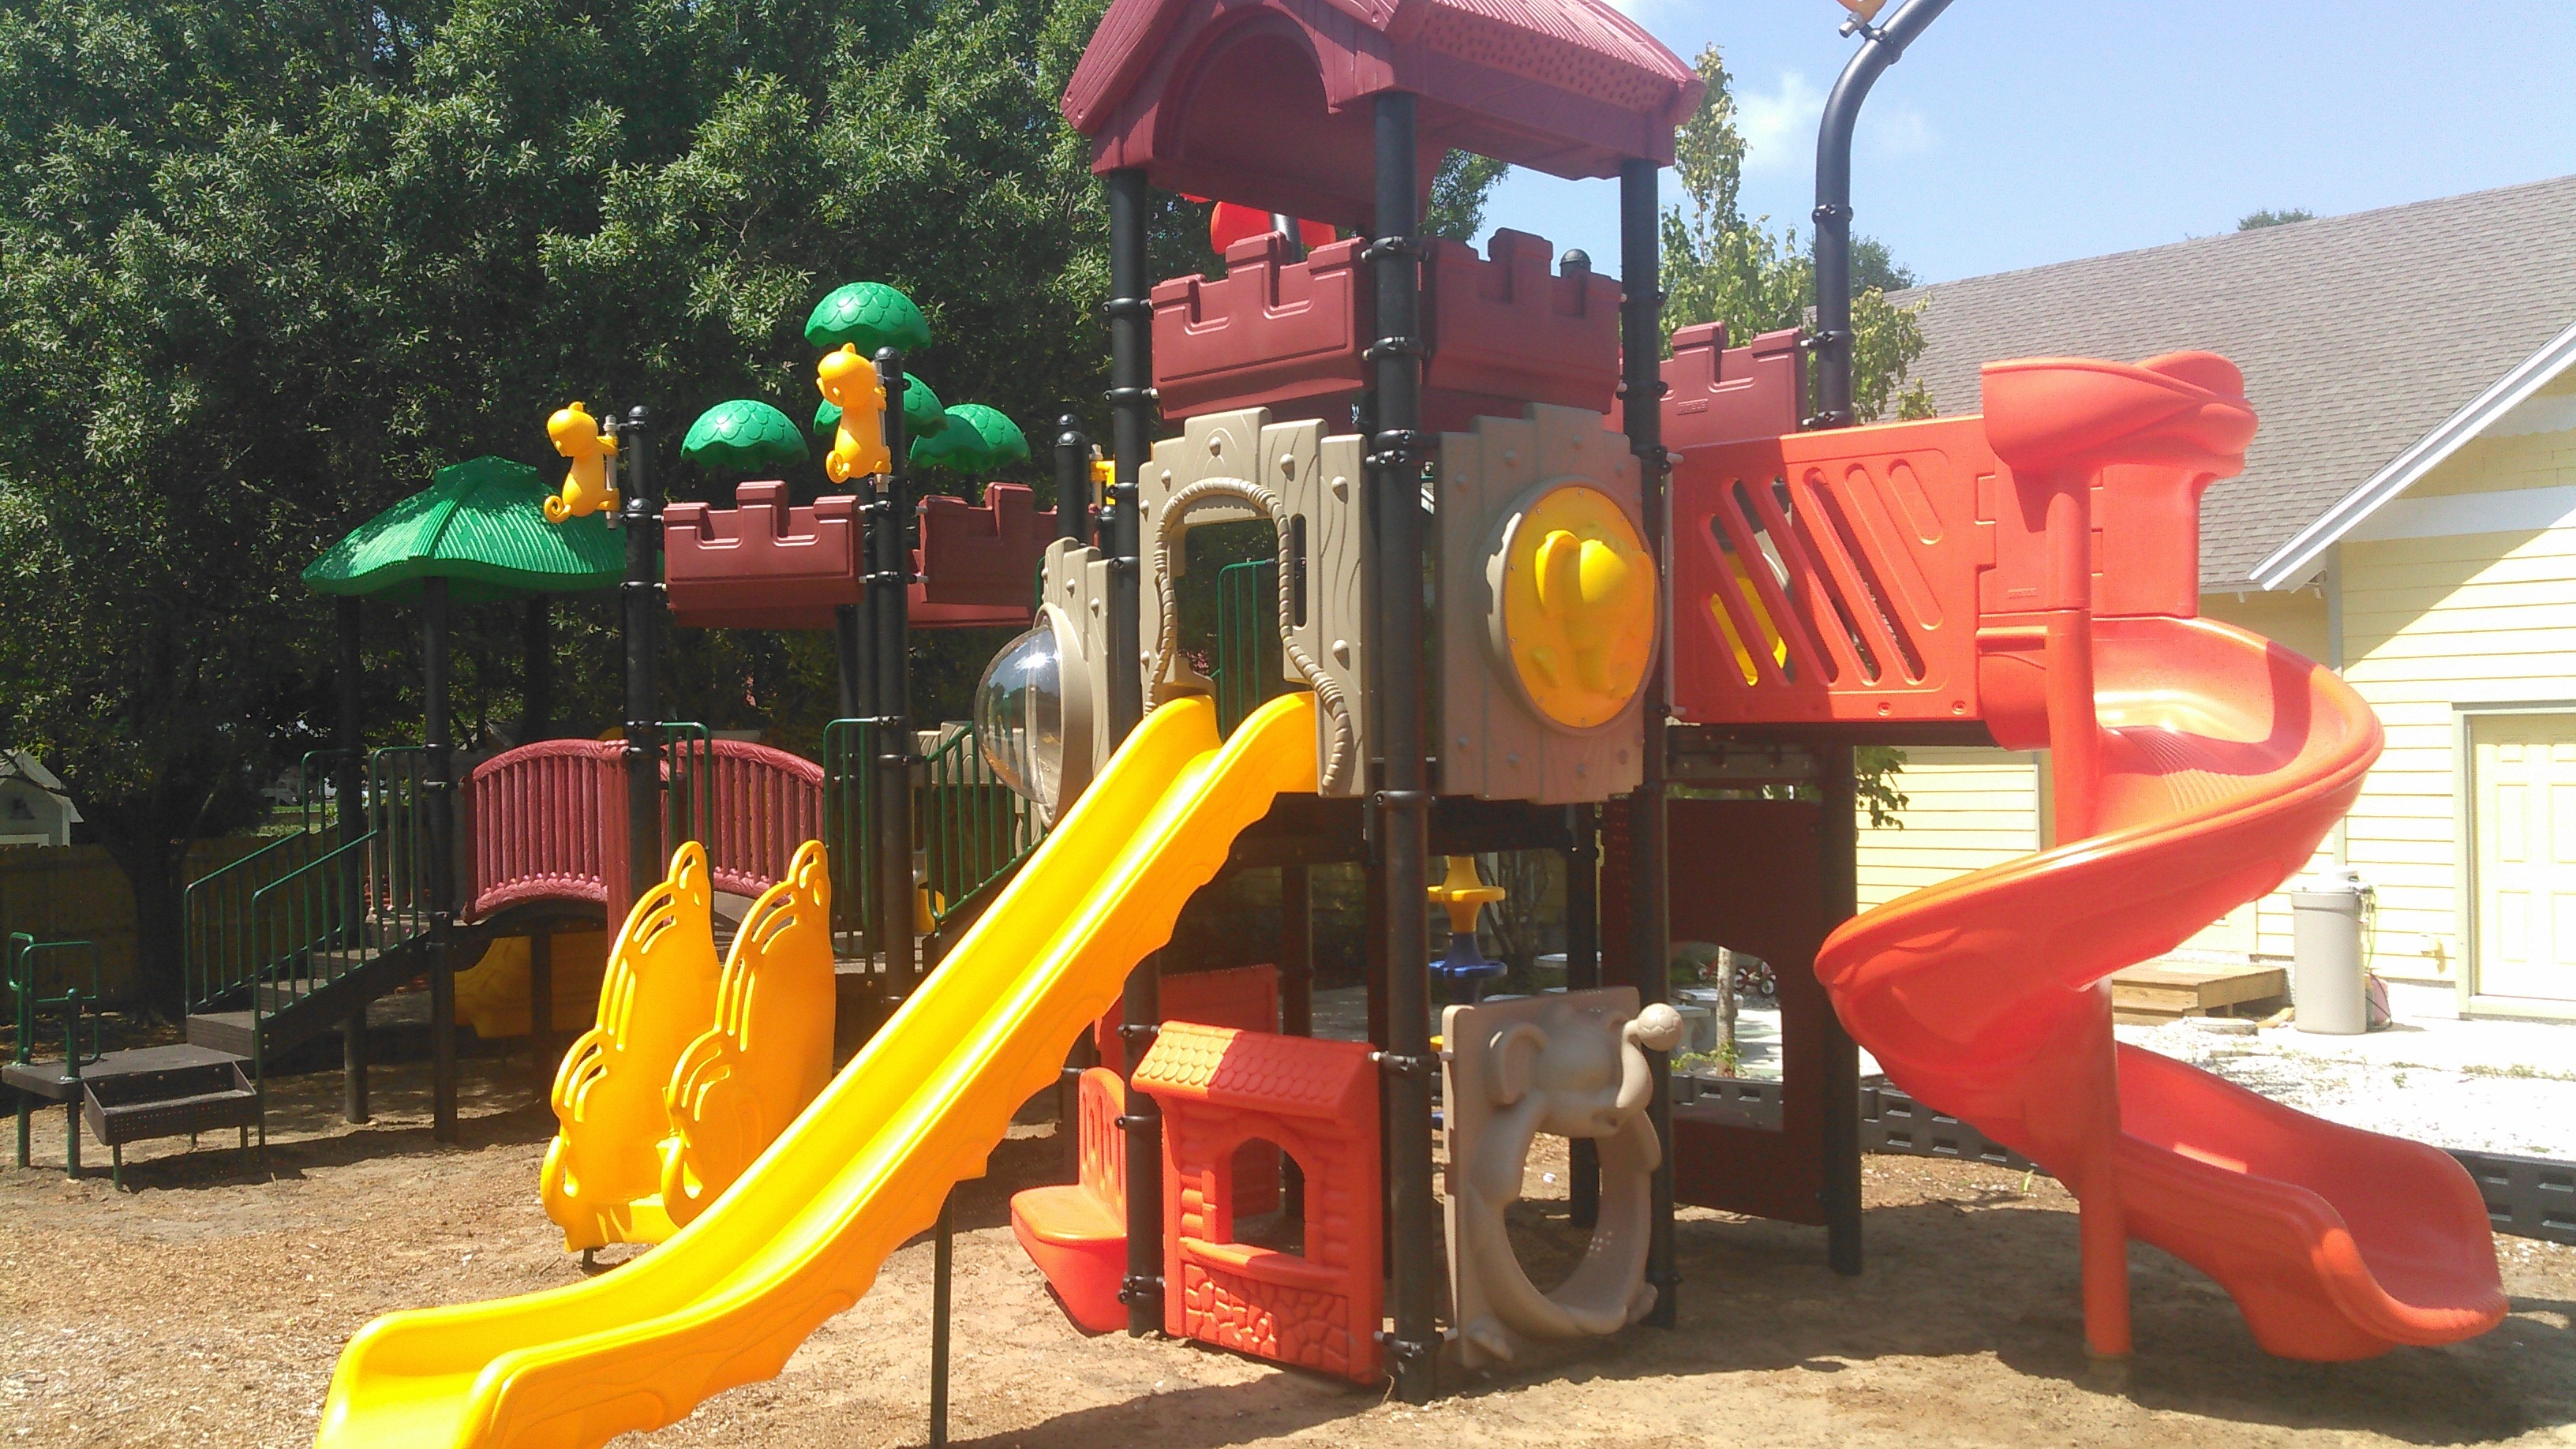 Home daycare playgrounds bing images for Playground equipment ideas